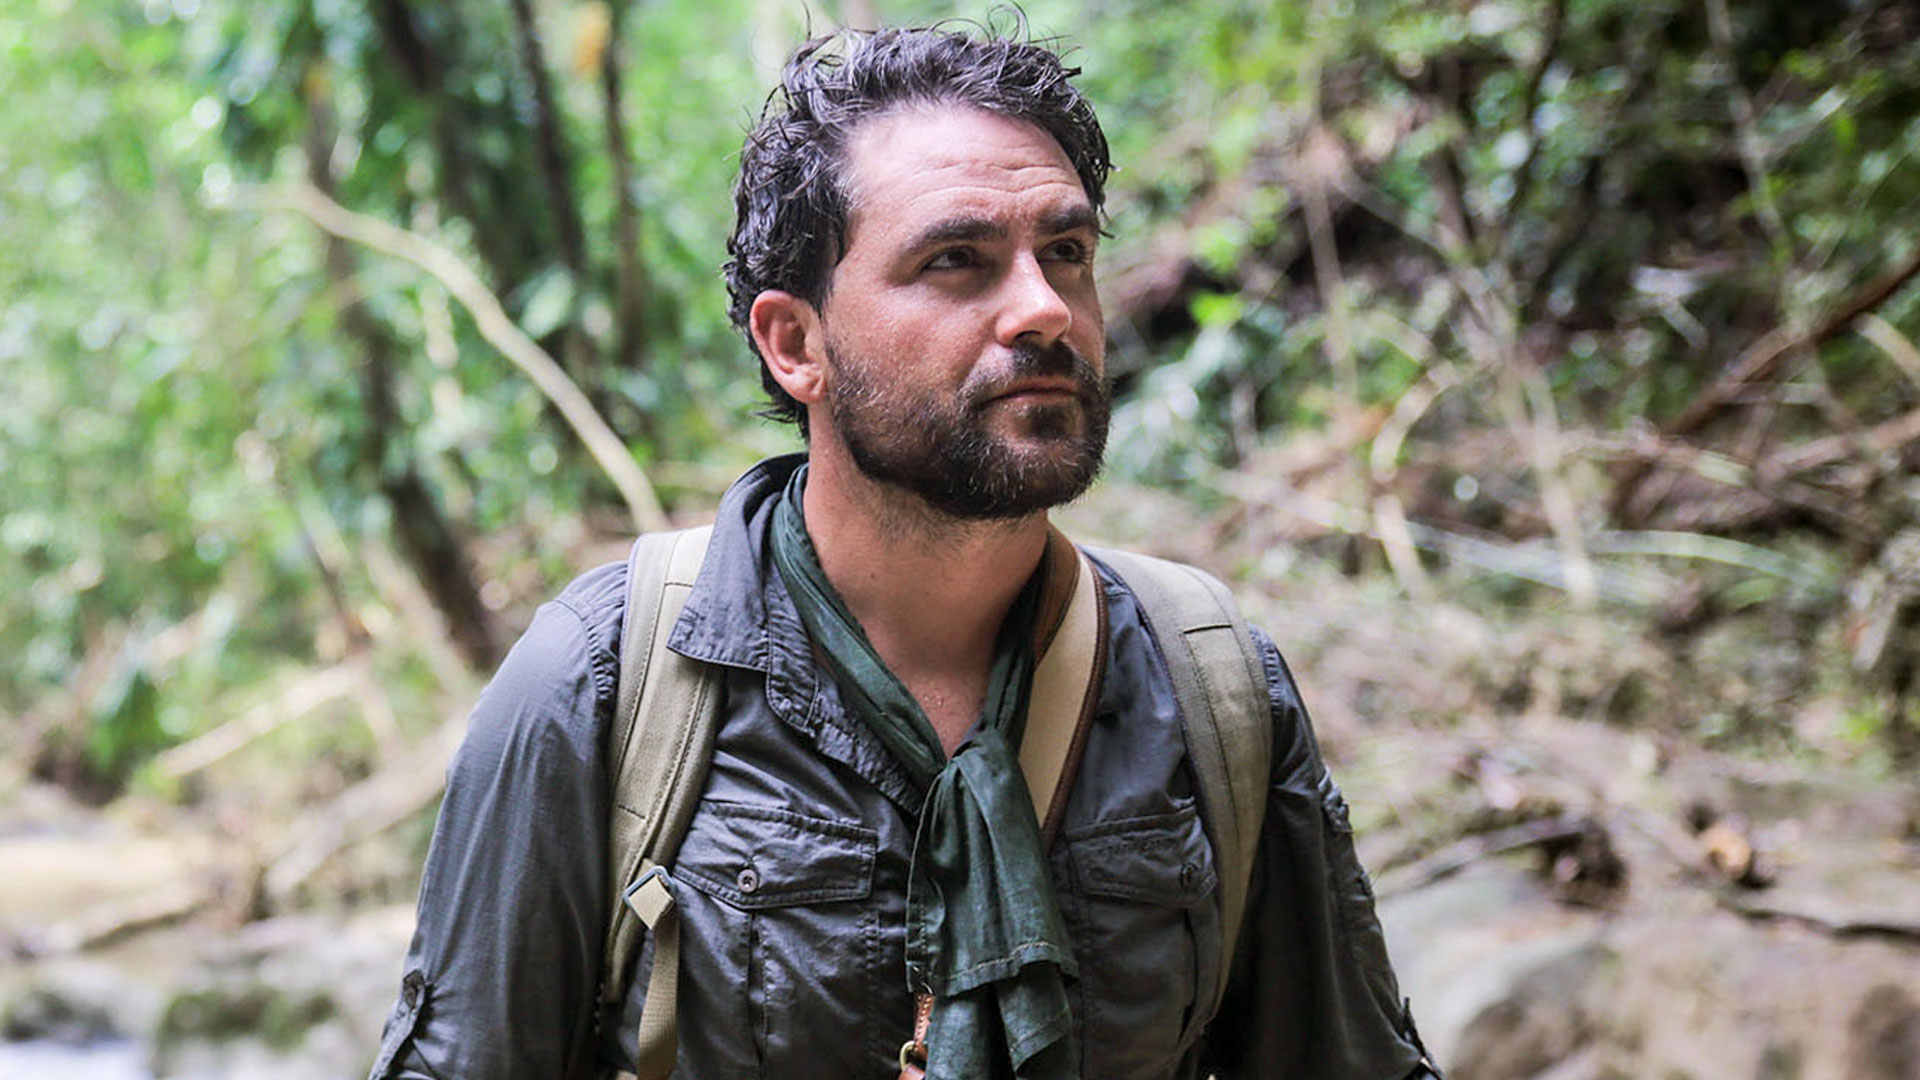 When Does Walking the Americas Series 2 Start? Premiere Date